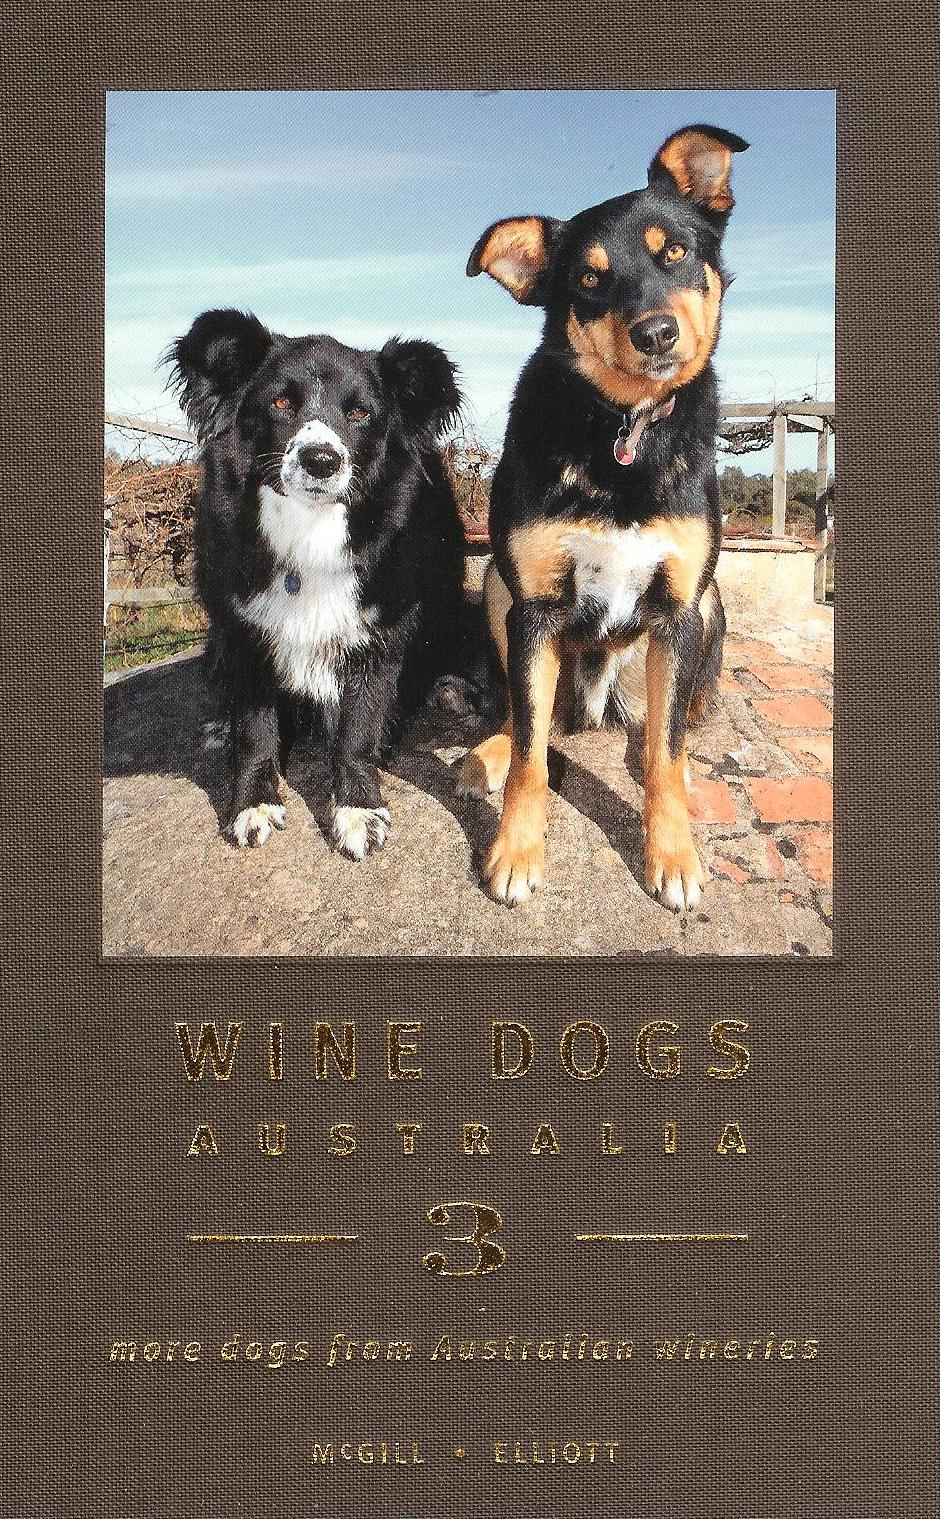 Book - Wine Dogs 3 front cover - 2012